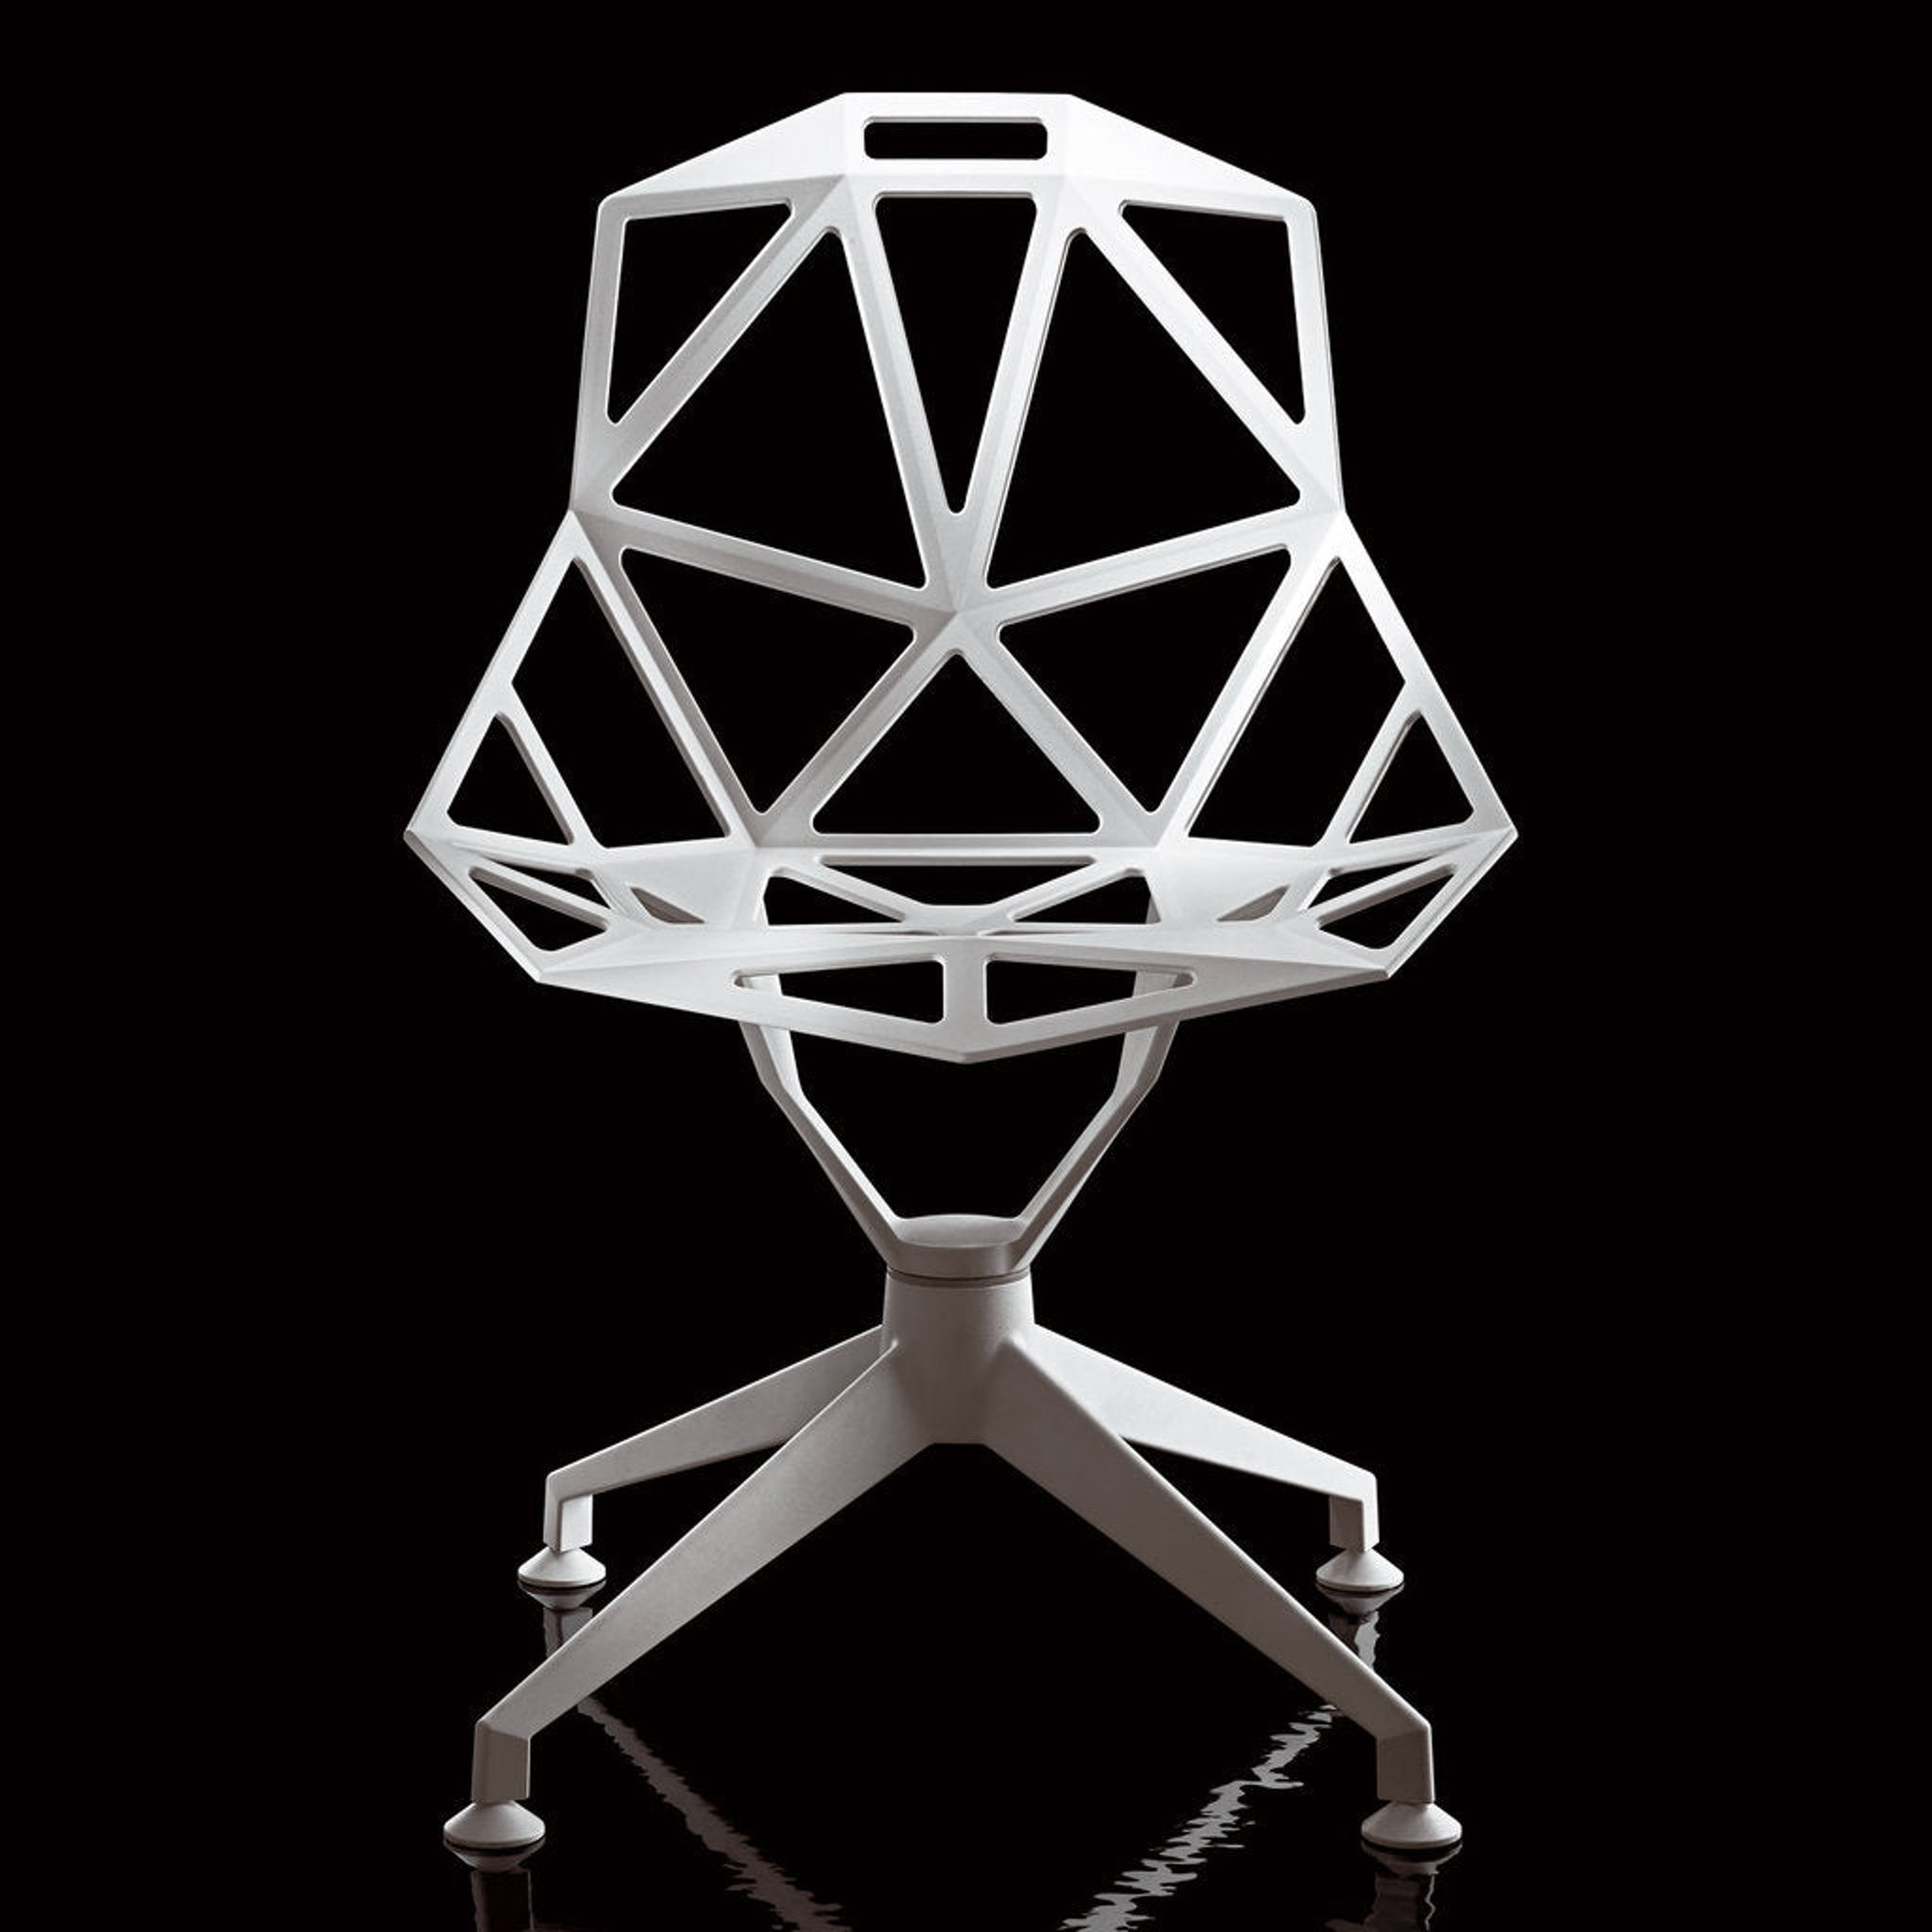 Chair One - 4 Star by Magis